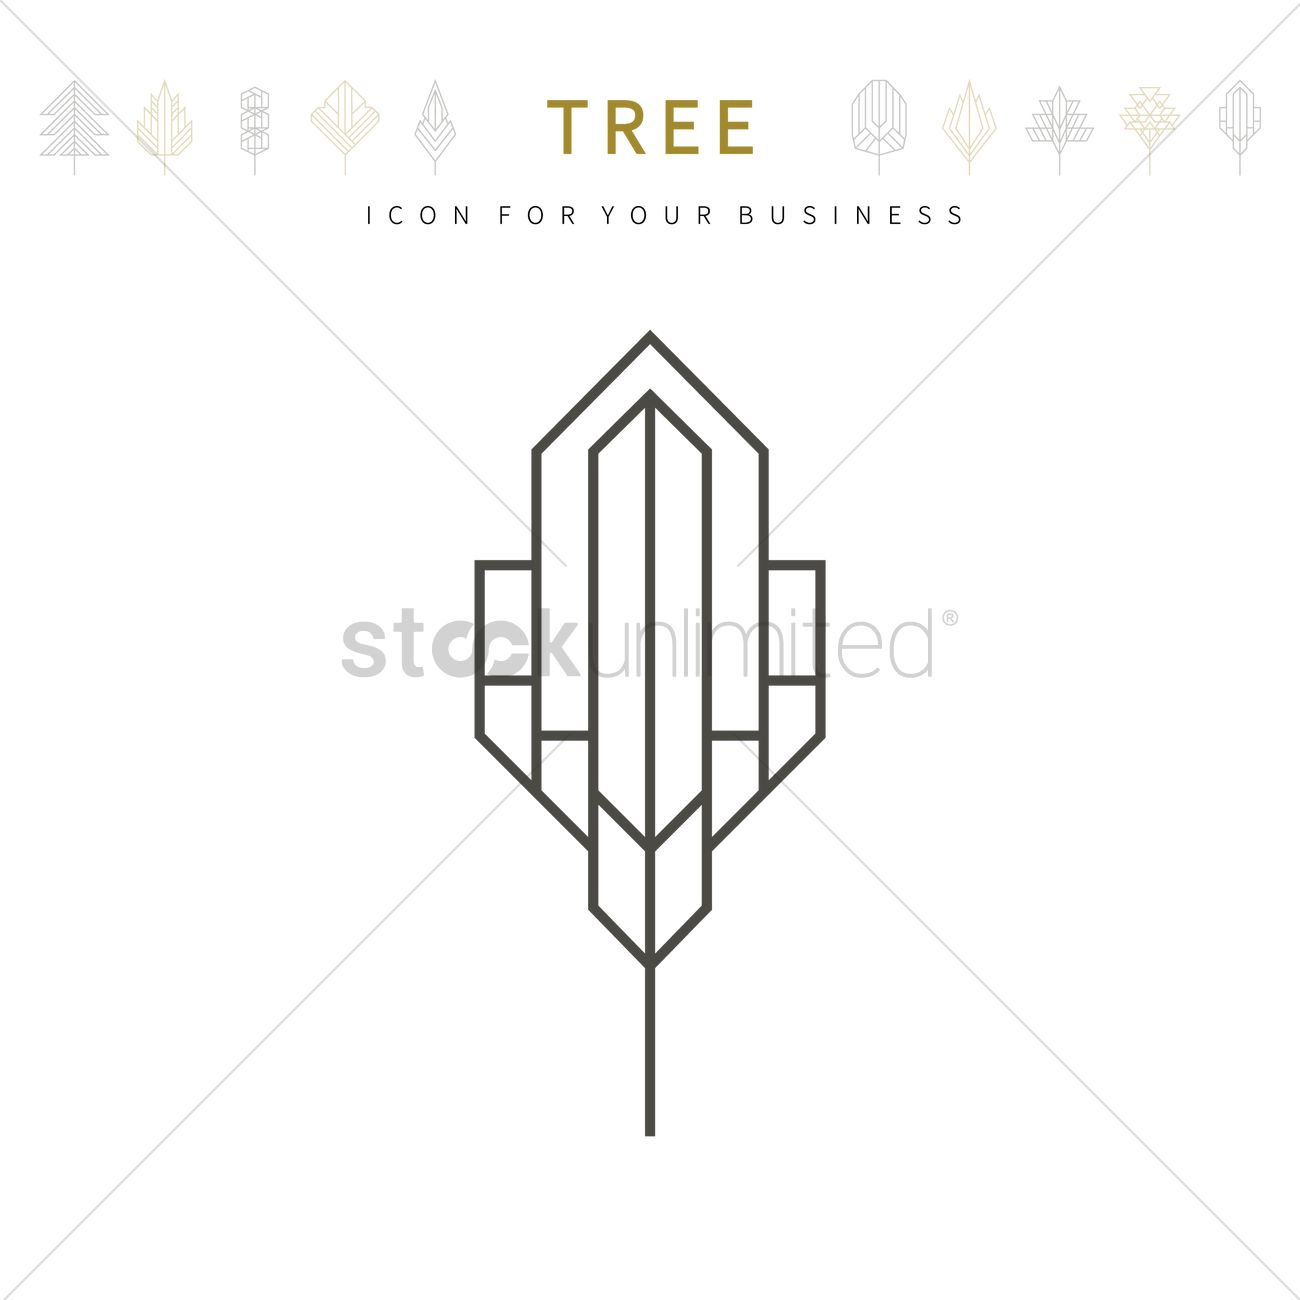 Tree template design vector image 1979903 stockunlimited tree template design vector graphic friedricerecipe Choice Image